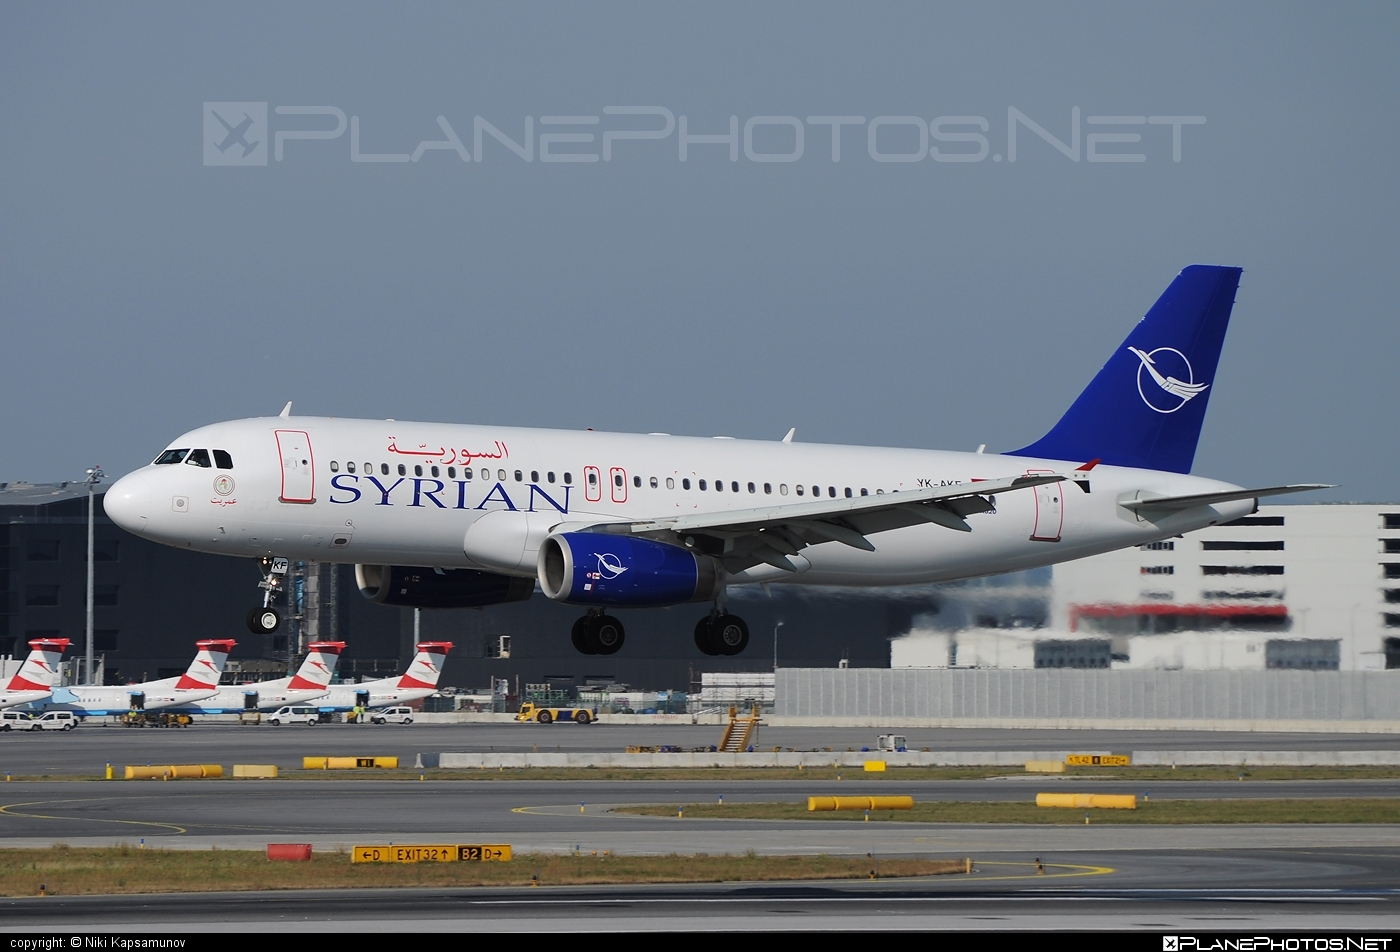 Airbus A320-232 - YK-AKF operated by SyrianAir - Syrian Arab Airline #a320 #a320family #airbus #airbus320